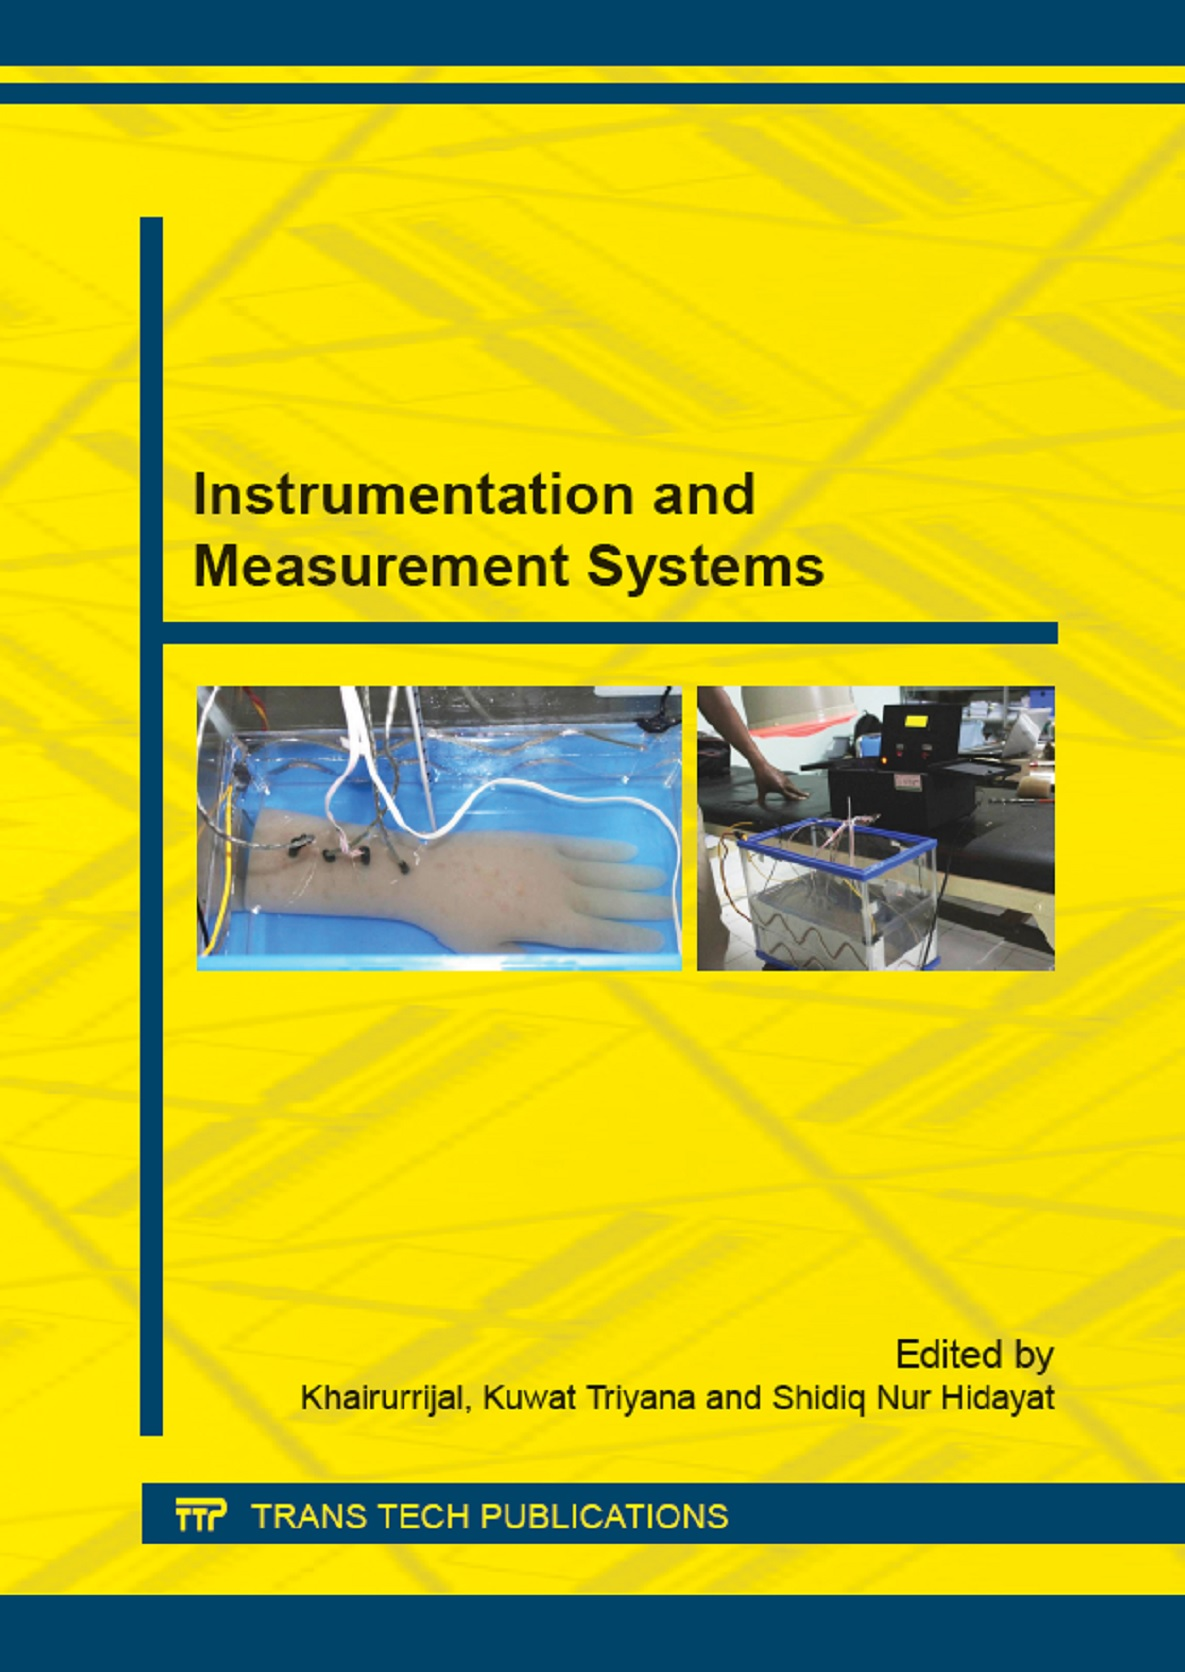 Instrumentation and Measurement Systems